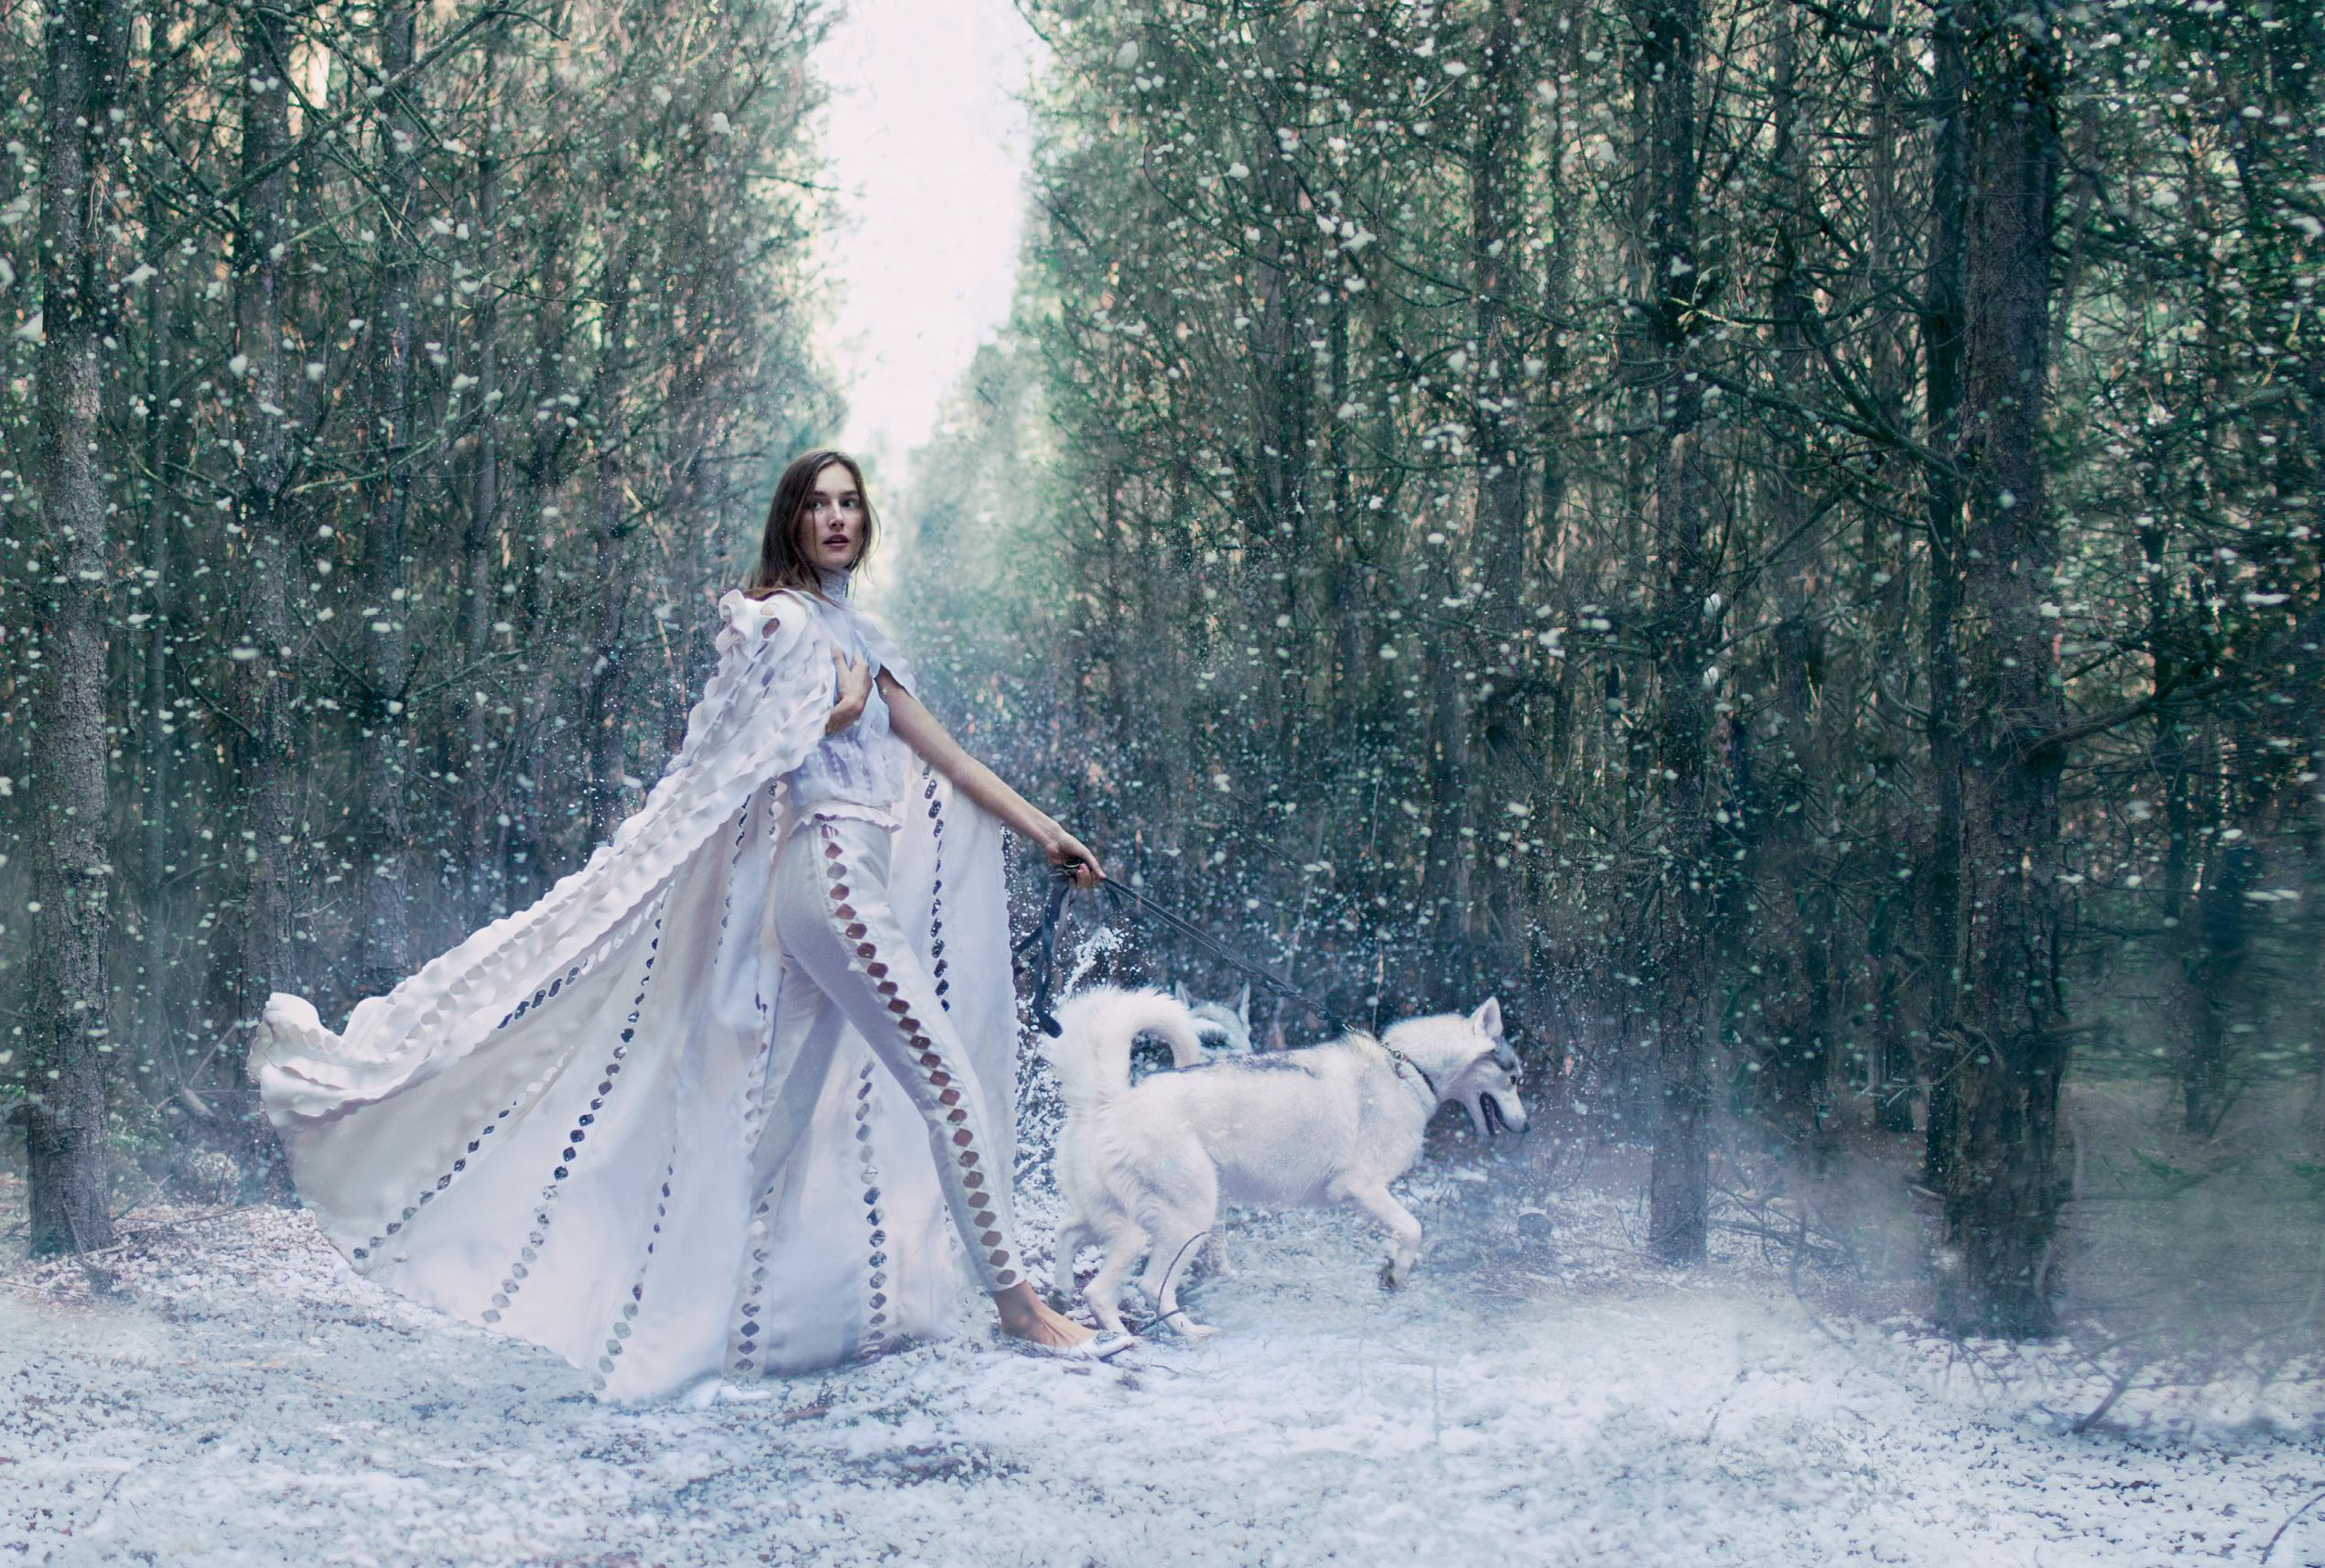 @projectfairytale: The Snow Queen